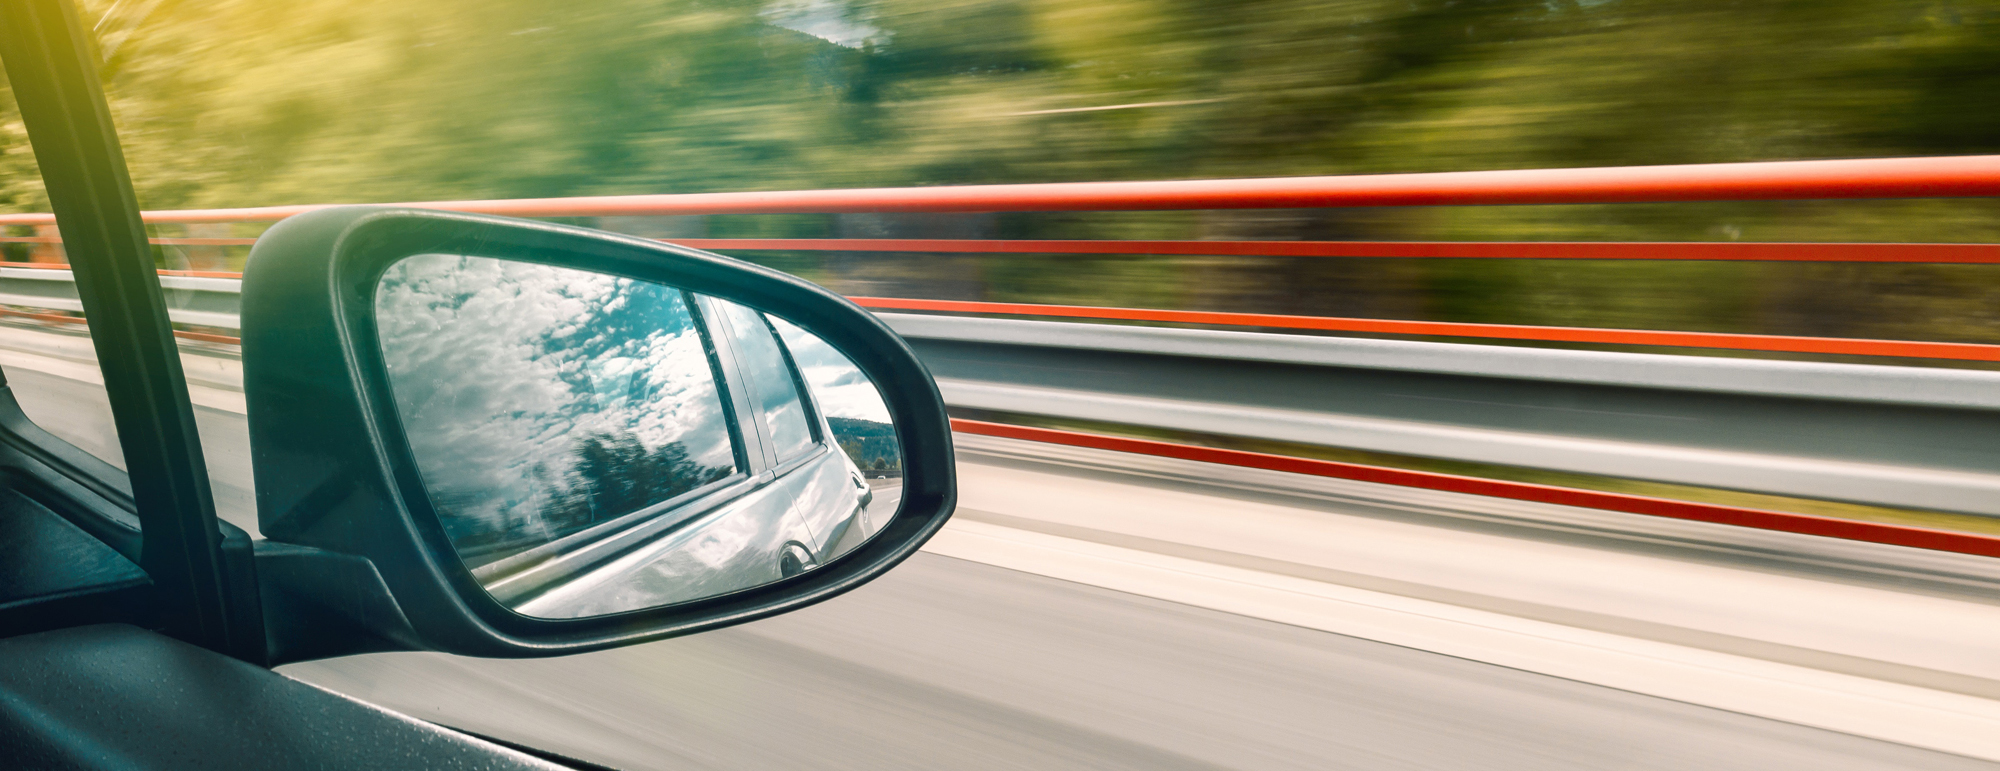 side mirror of a car while driving down the road